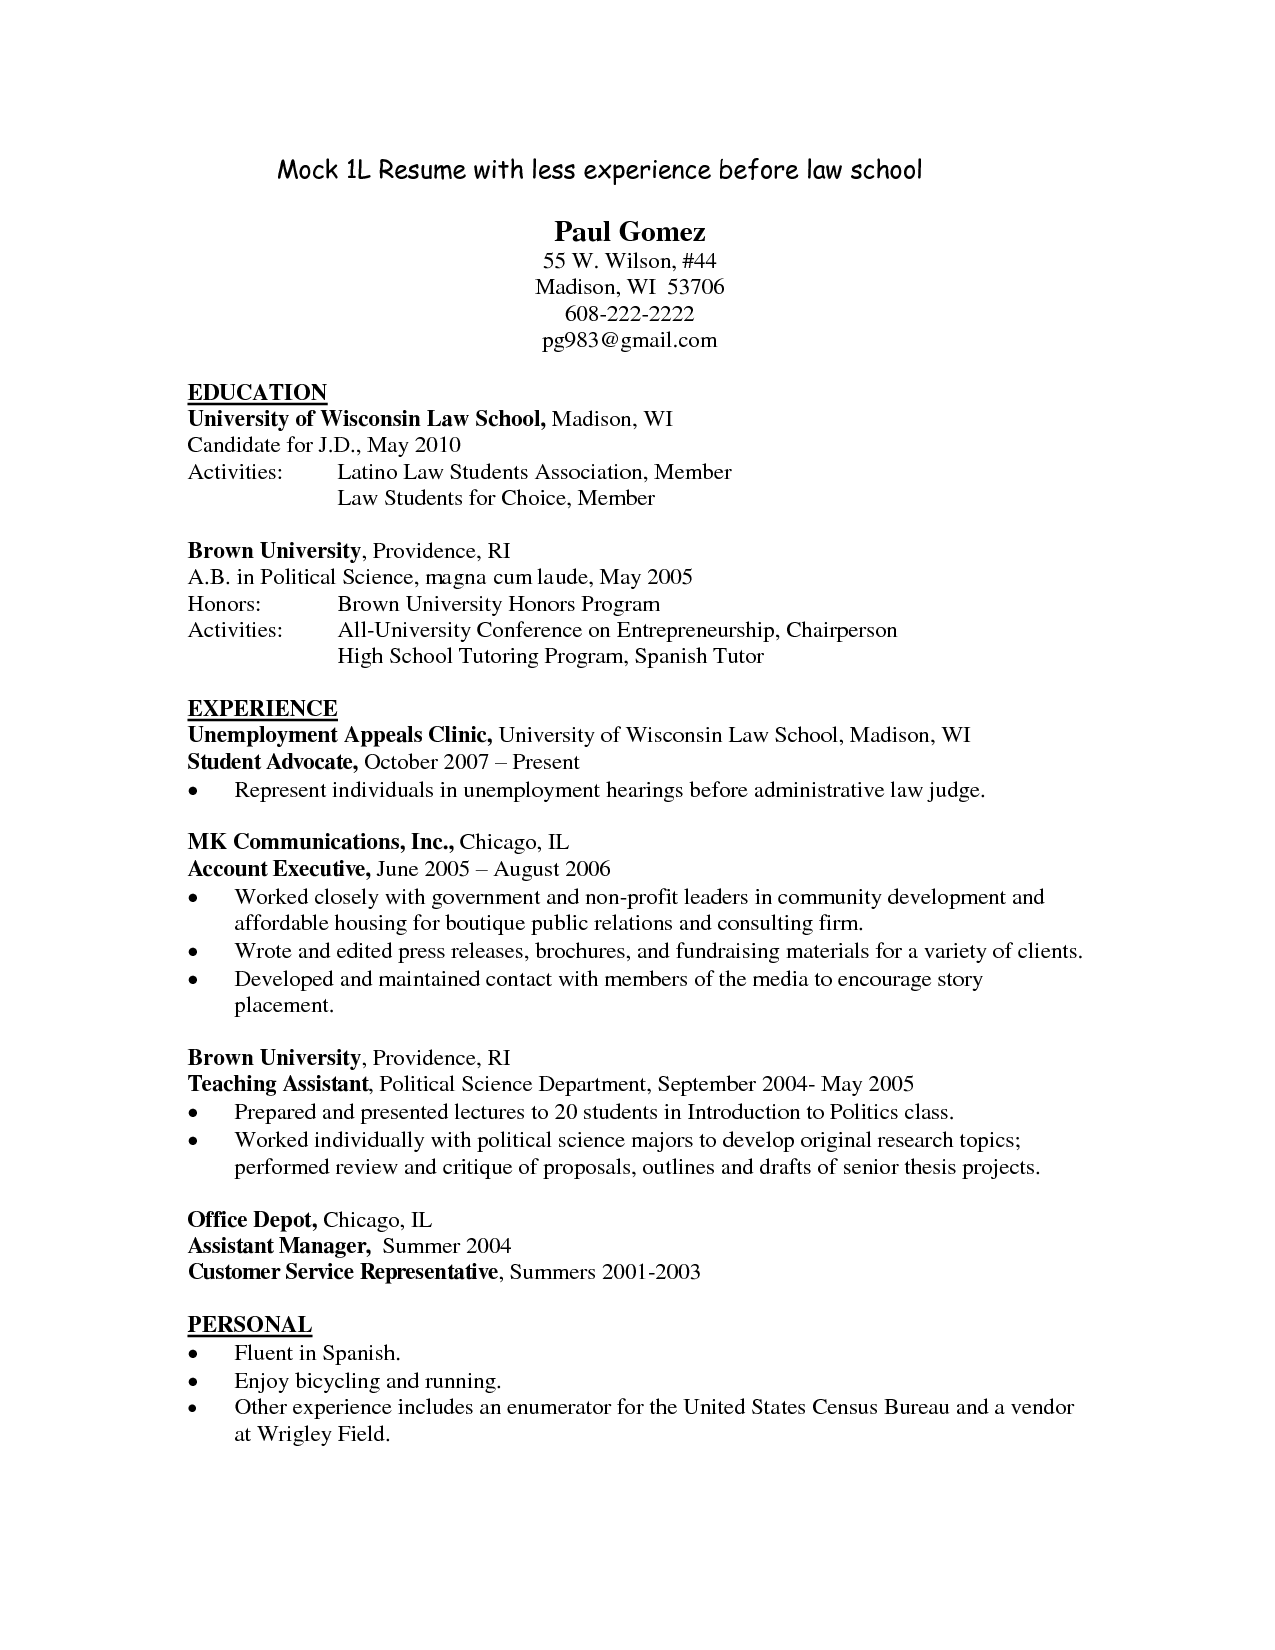 legal resume template templates and builder writing law school cover letter internship sample for